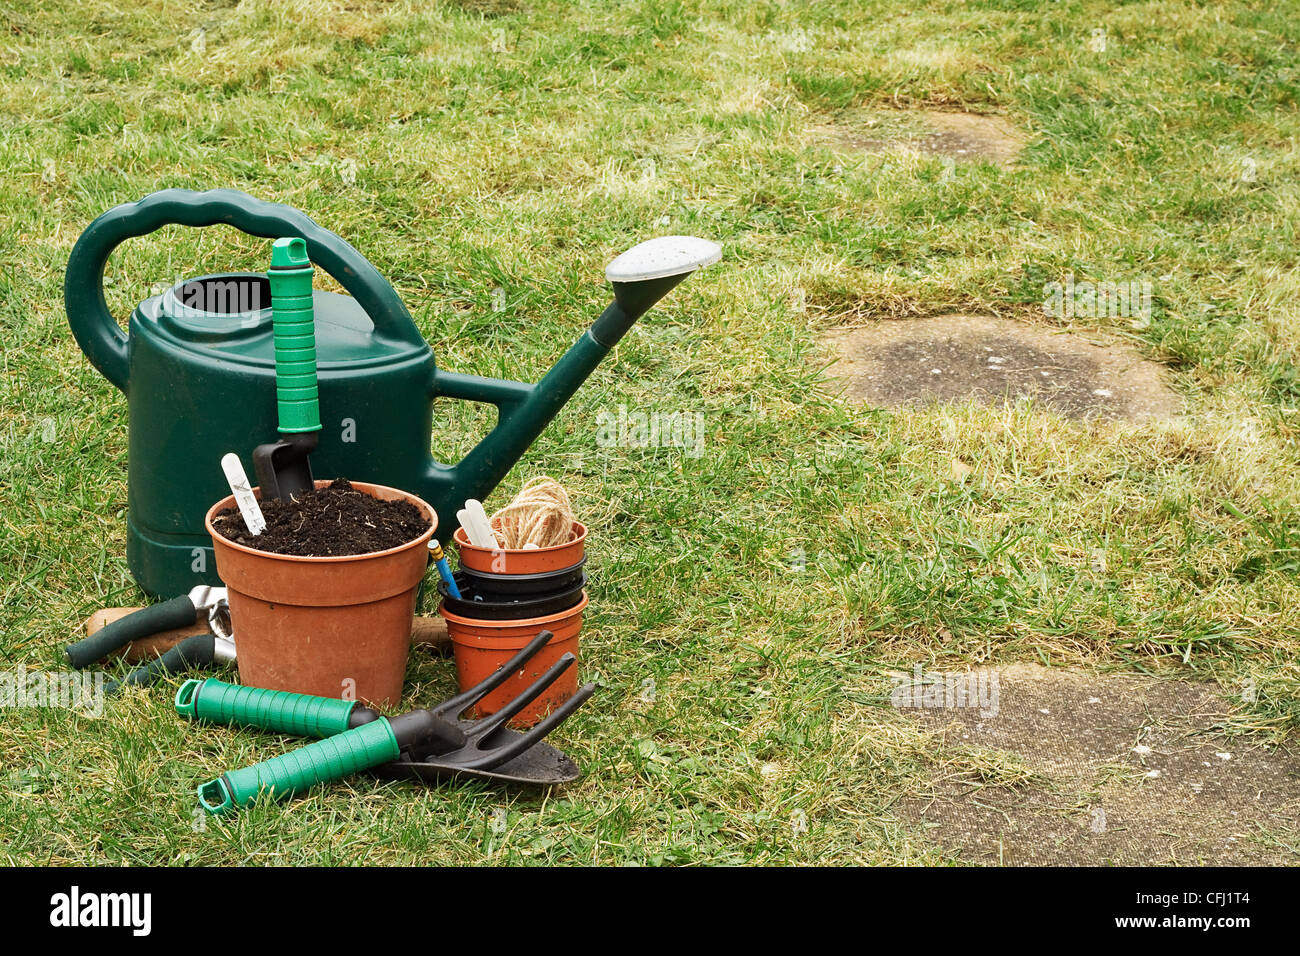 A selection of Garden utensils on the lawn Stock Photo